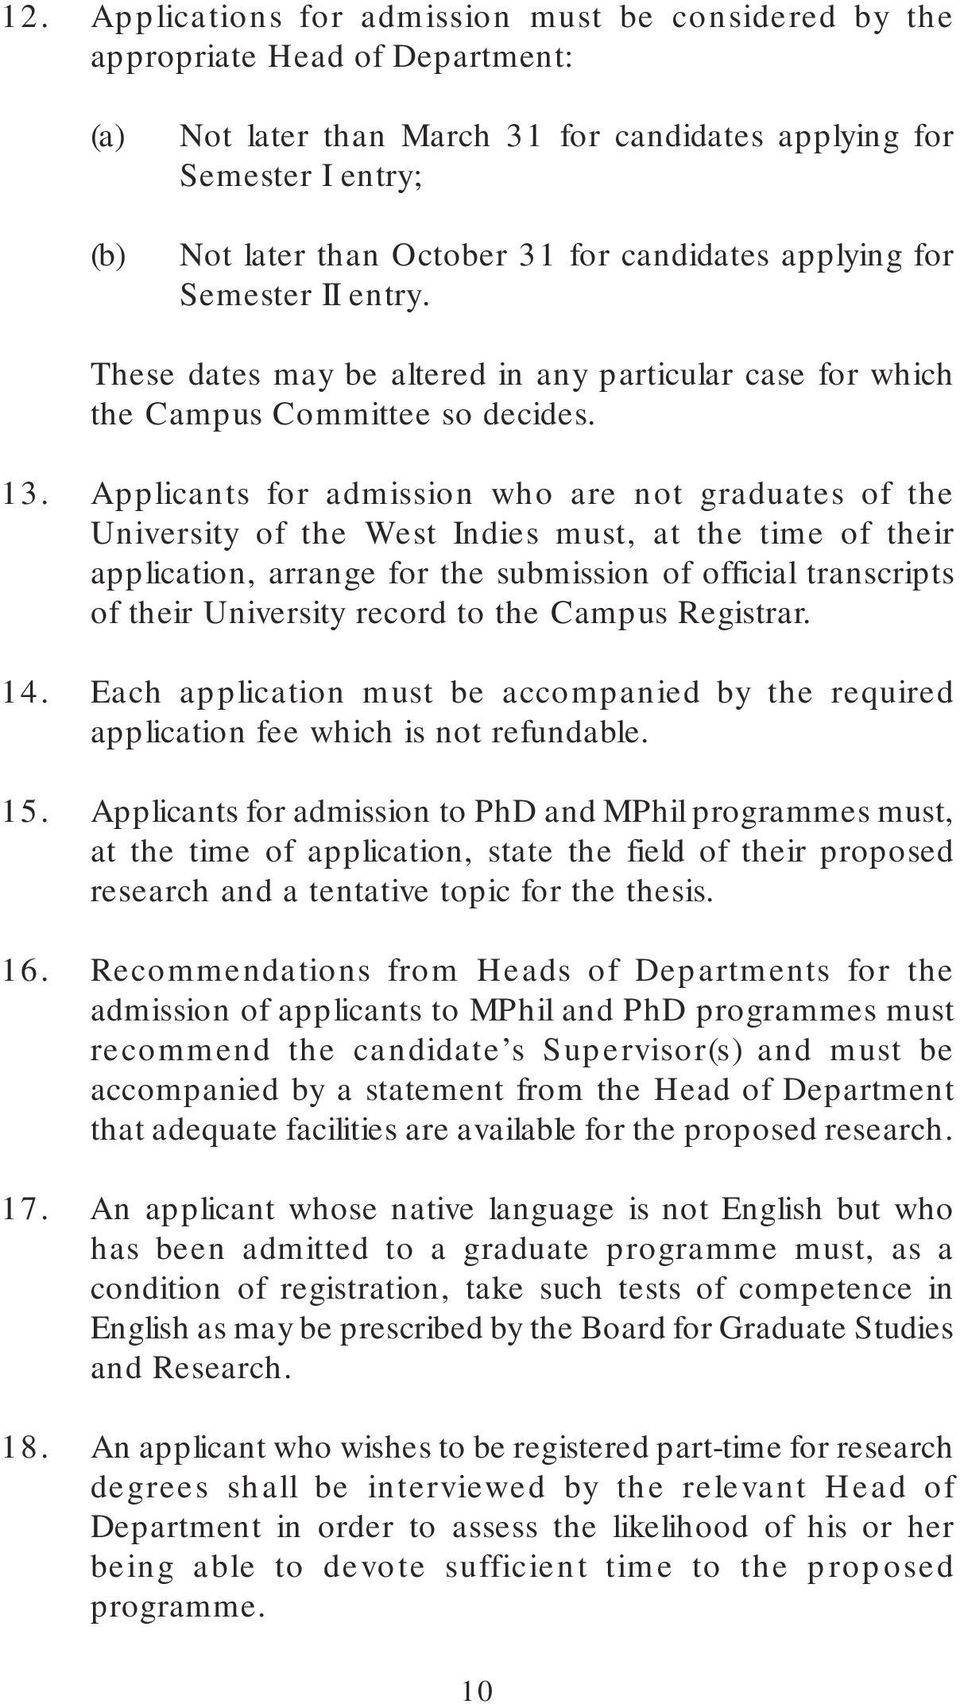 Applicants for admission who are not graduates of the University of the West Indies must, at the time of their application, arrange for the submission of official transcripts of their University